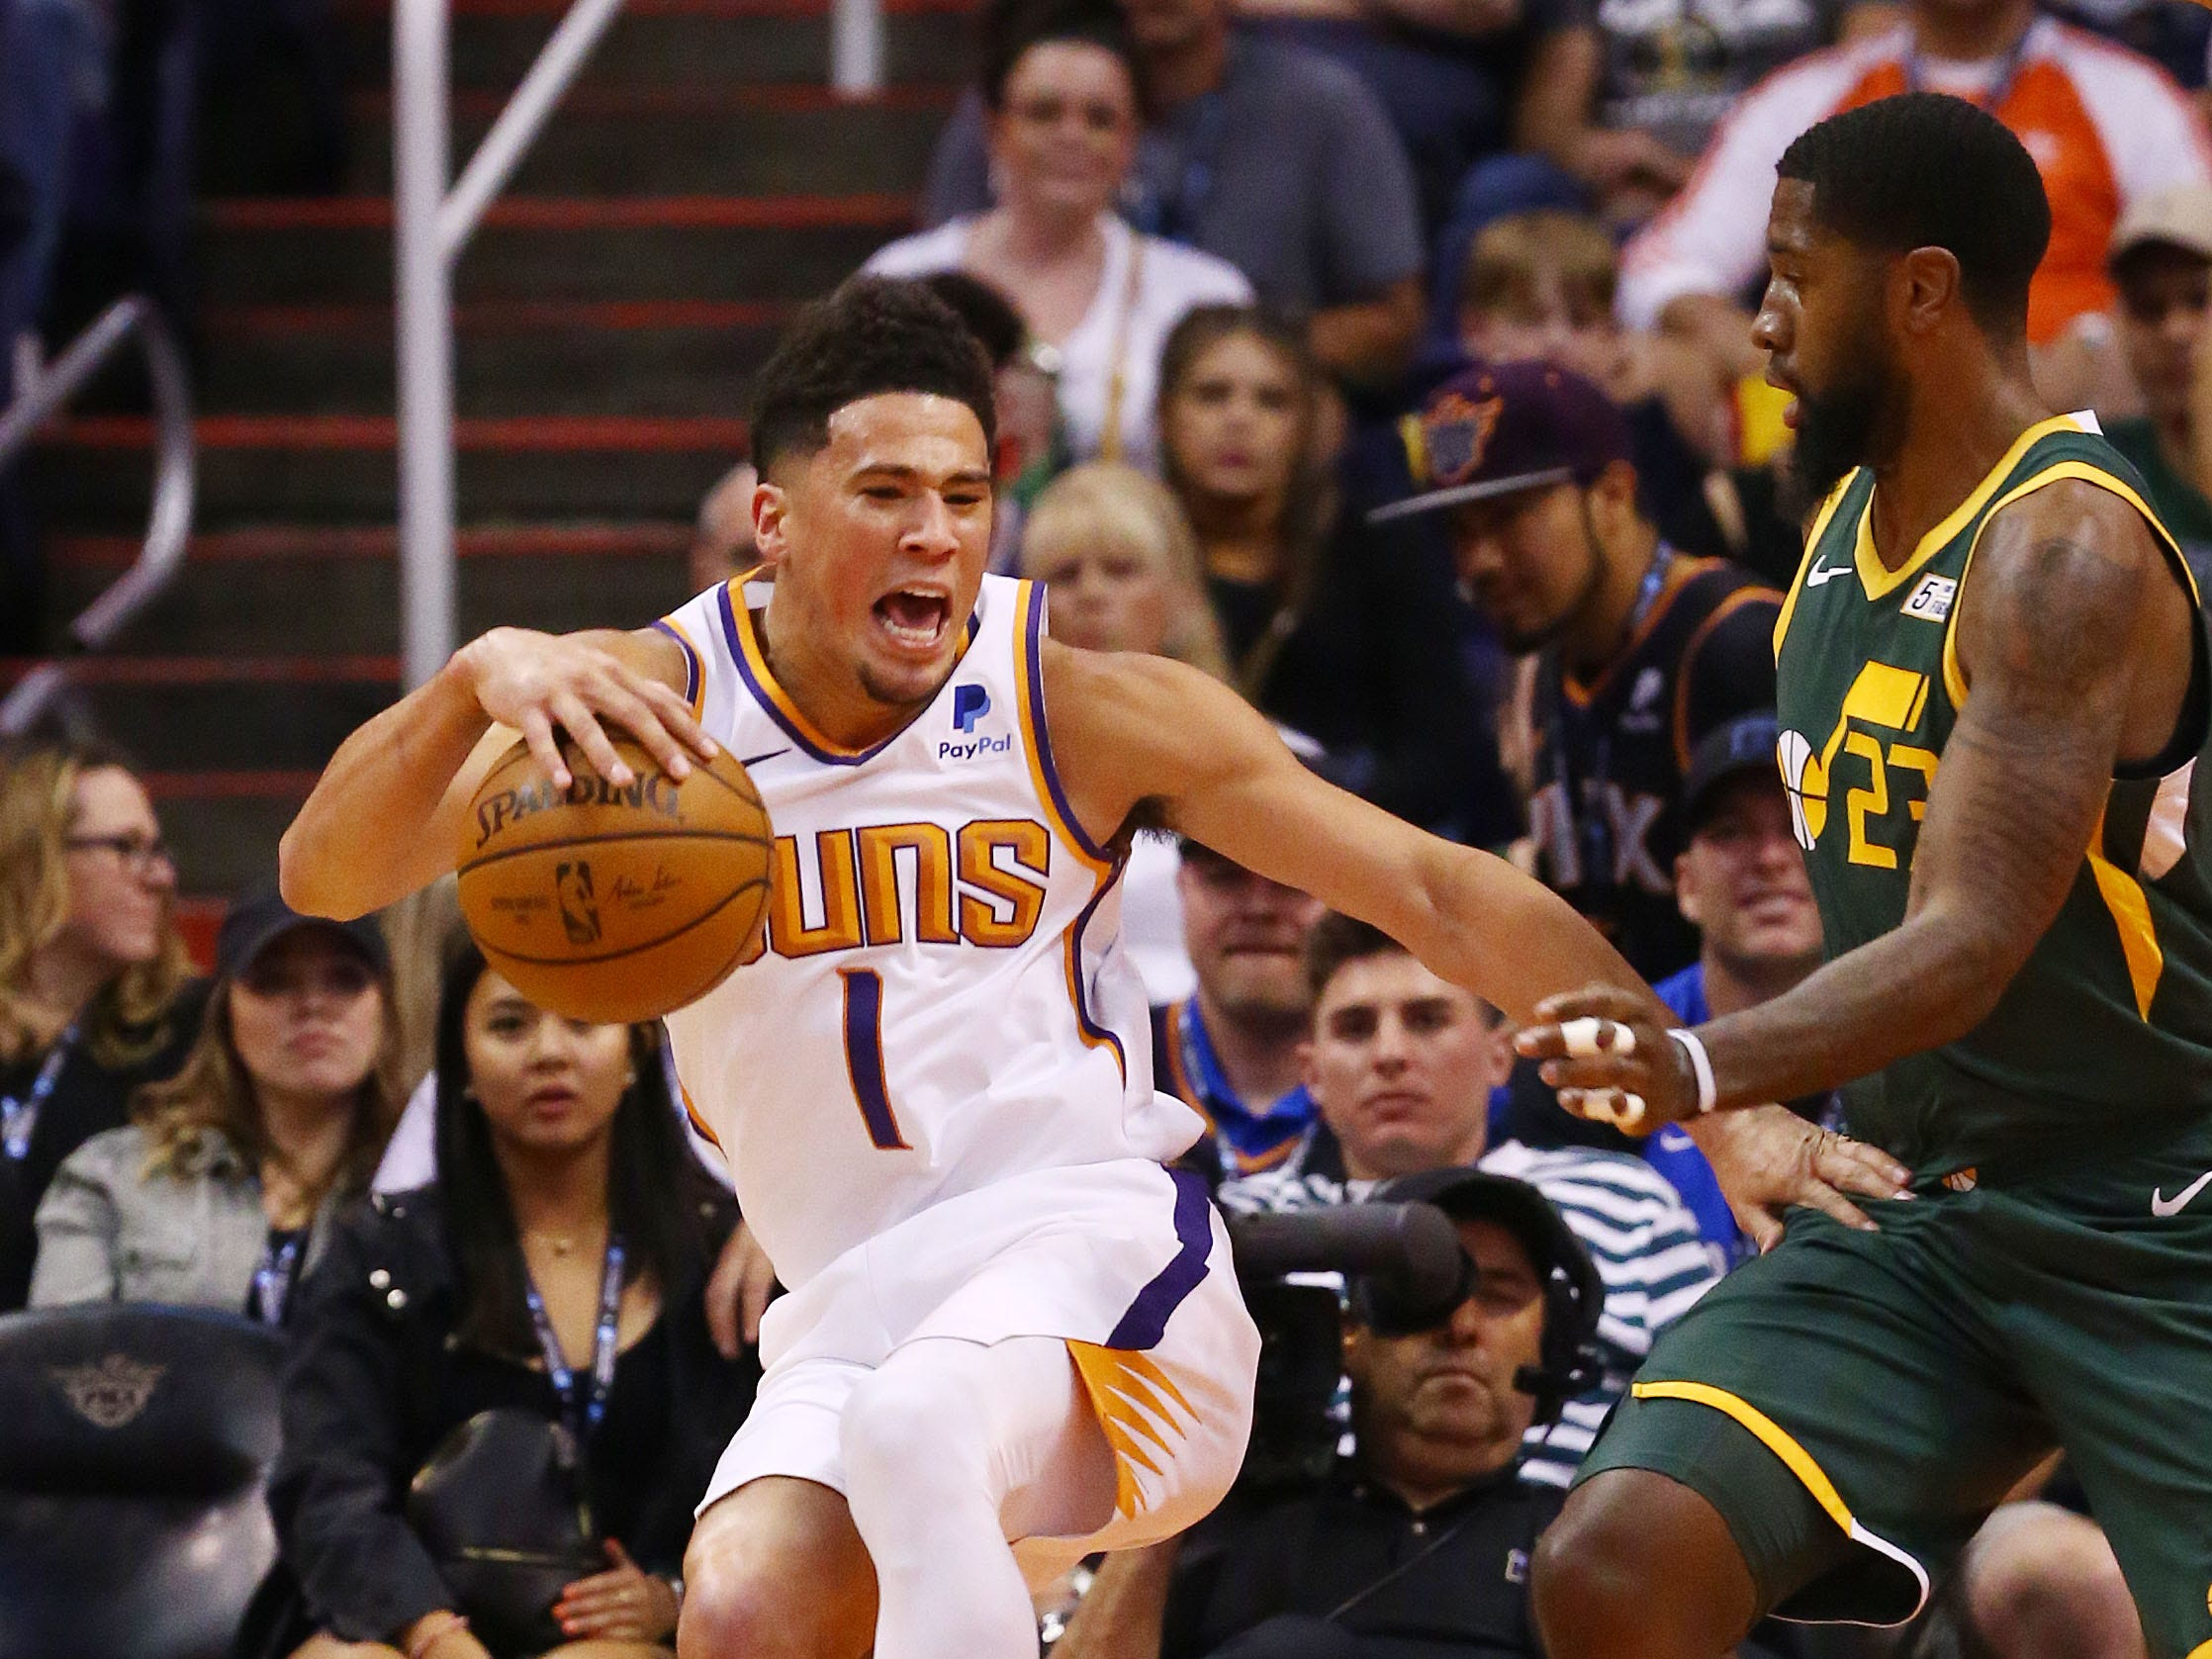 Phoenix Suns guard Devin Booker (1) reacts after rolling his left ankle while landing on the foot of Utah Jazz forward Royce O'Neale (23) in the first half on Apr. 3, 2019 at Talking Stick Resort Arena in Phoenix, Ariz. Devin Booker helped off the court to the locker room.